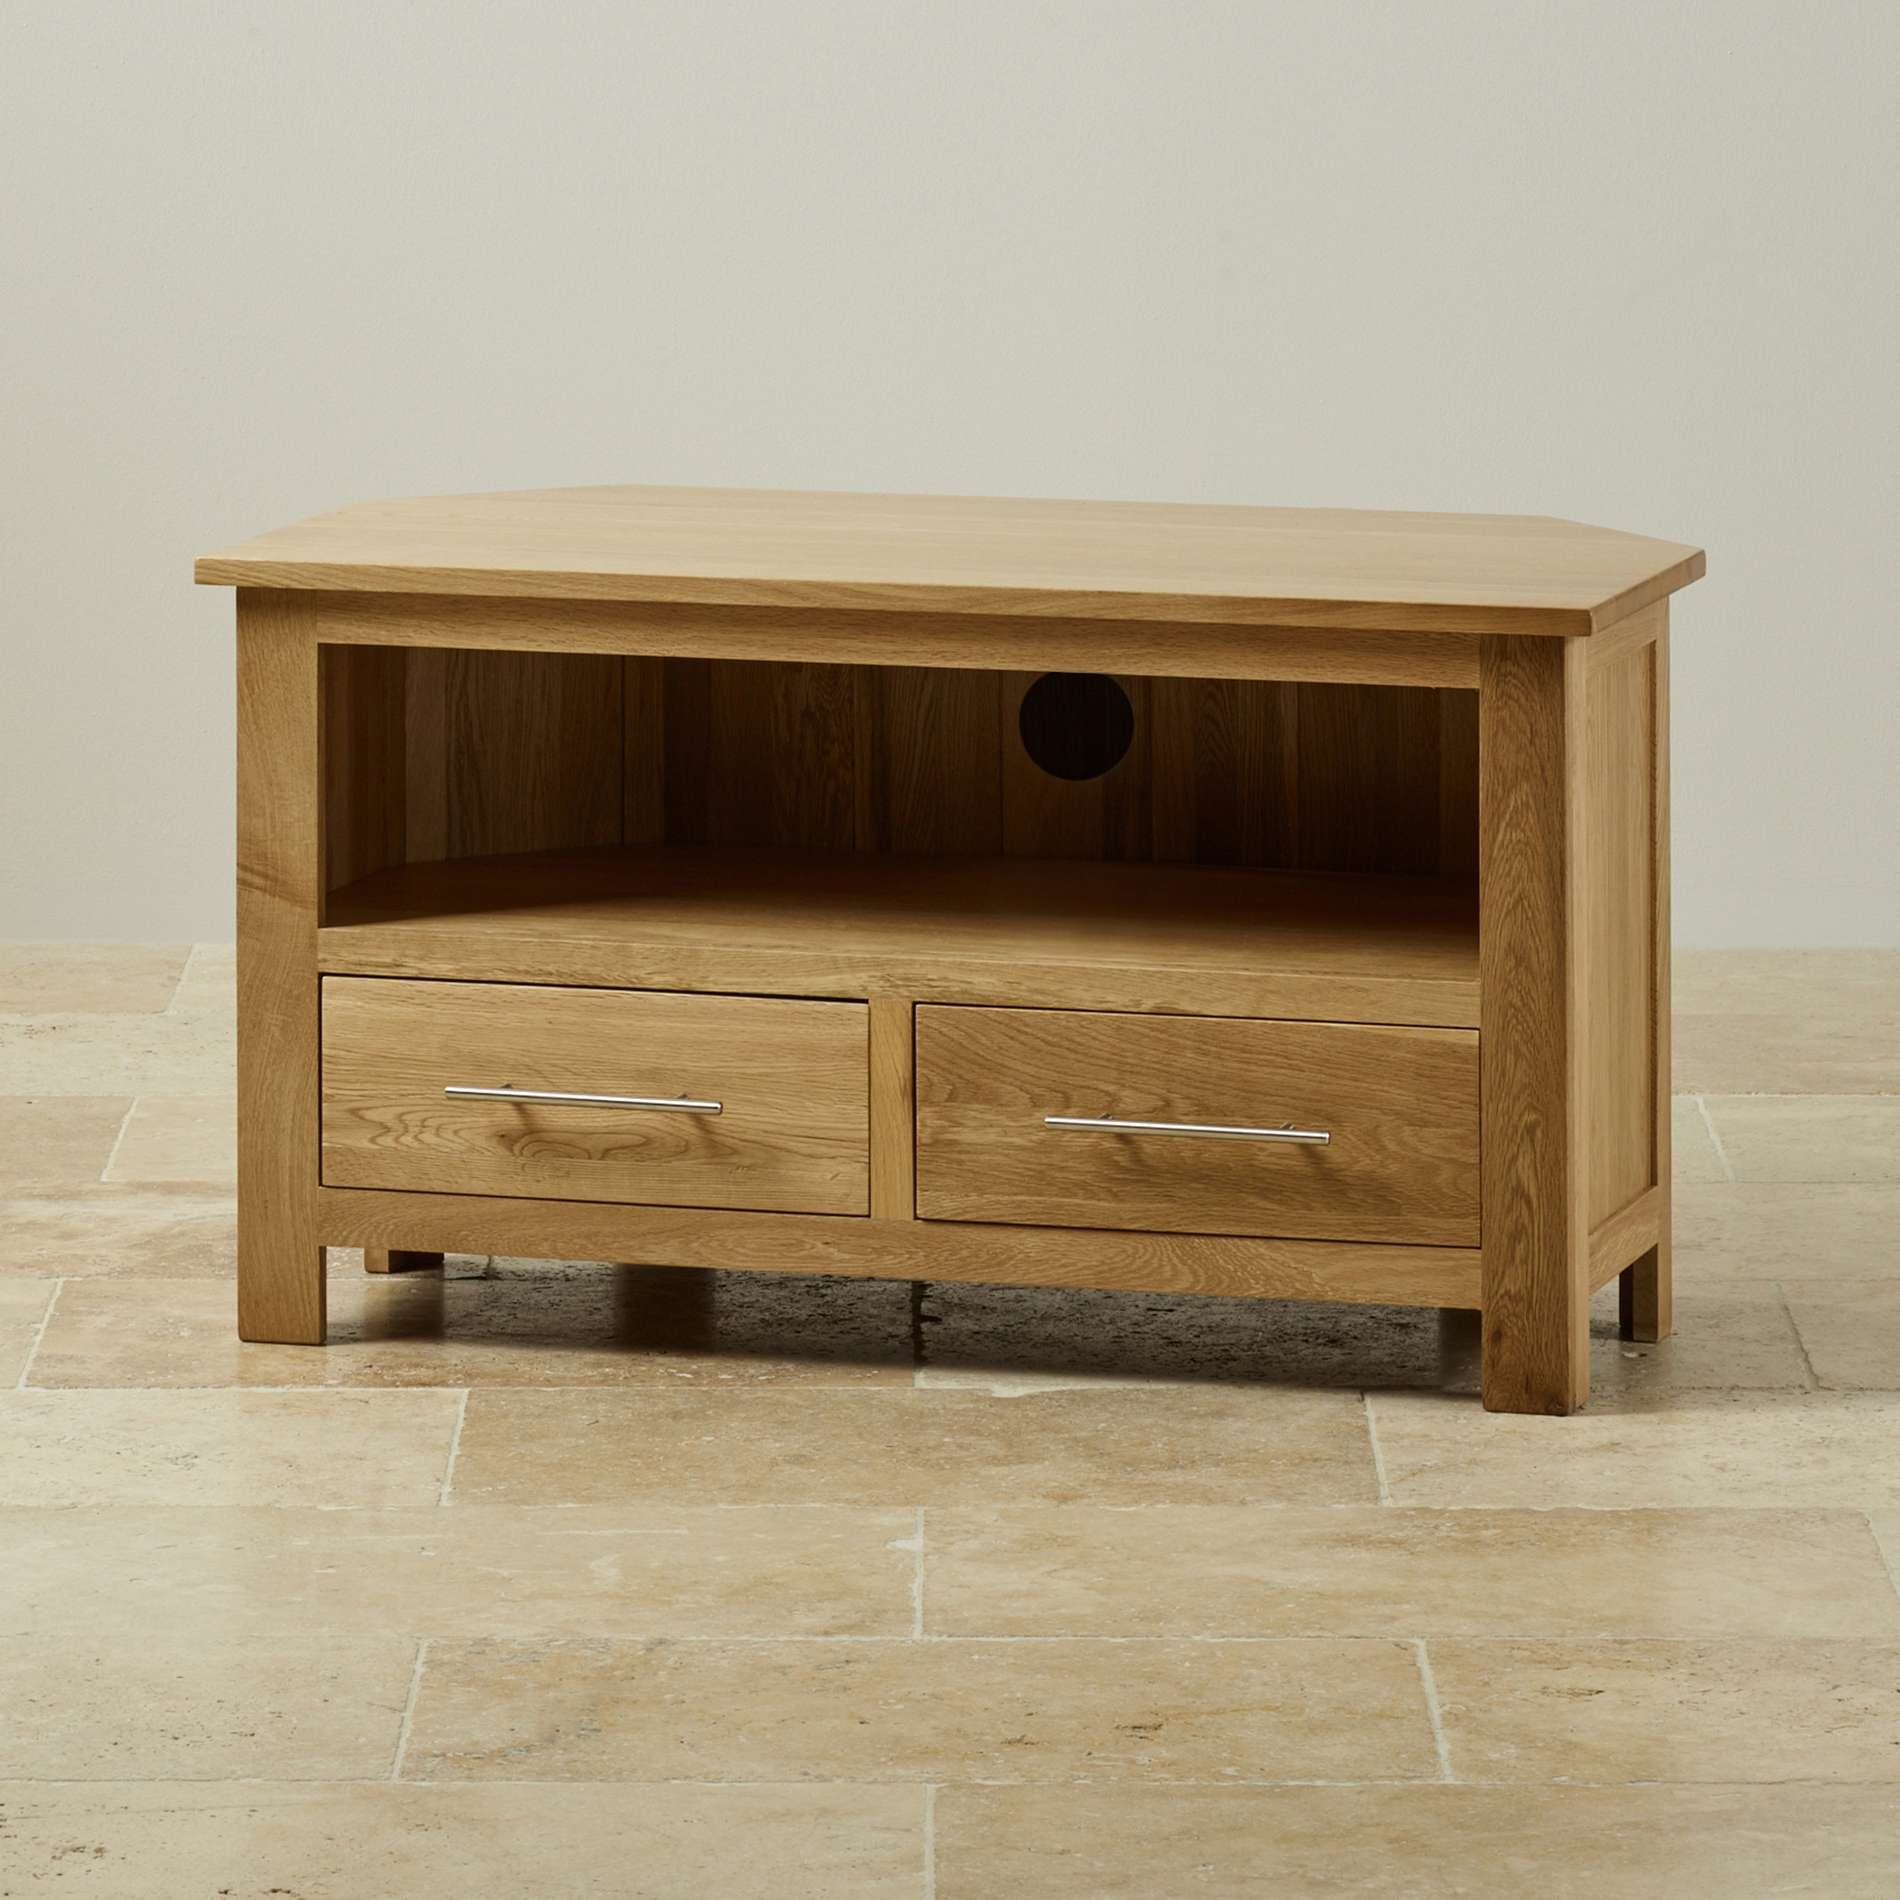 Rivermead Corner Tv Cabinet In Solid Oak | Oak Furniture Land Throughout Oak Corner Tv Cabinets (View 17 of 20)